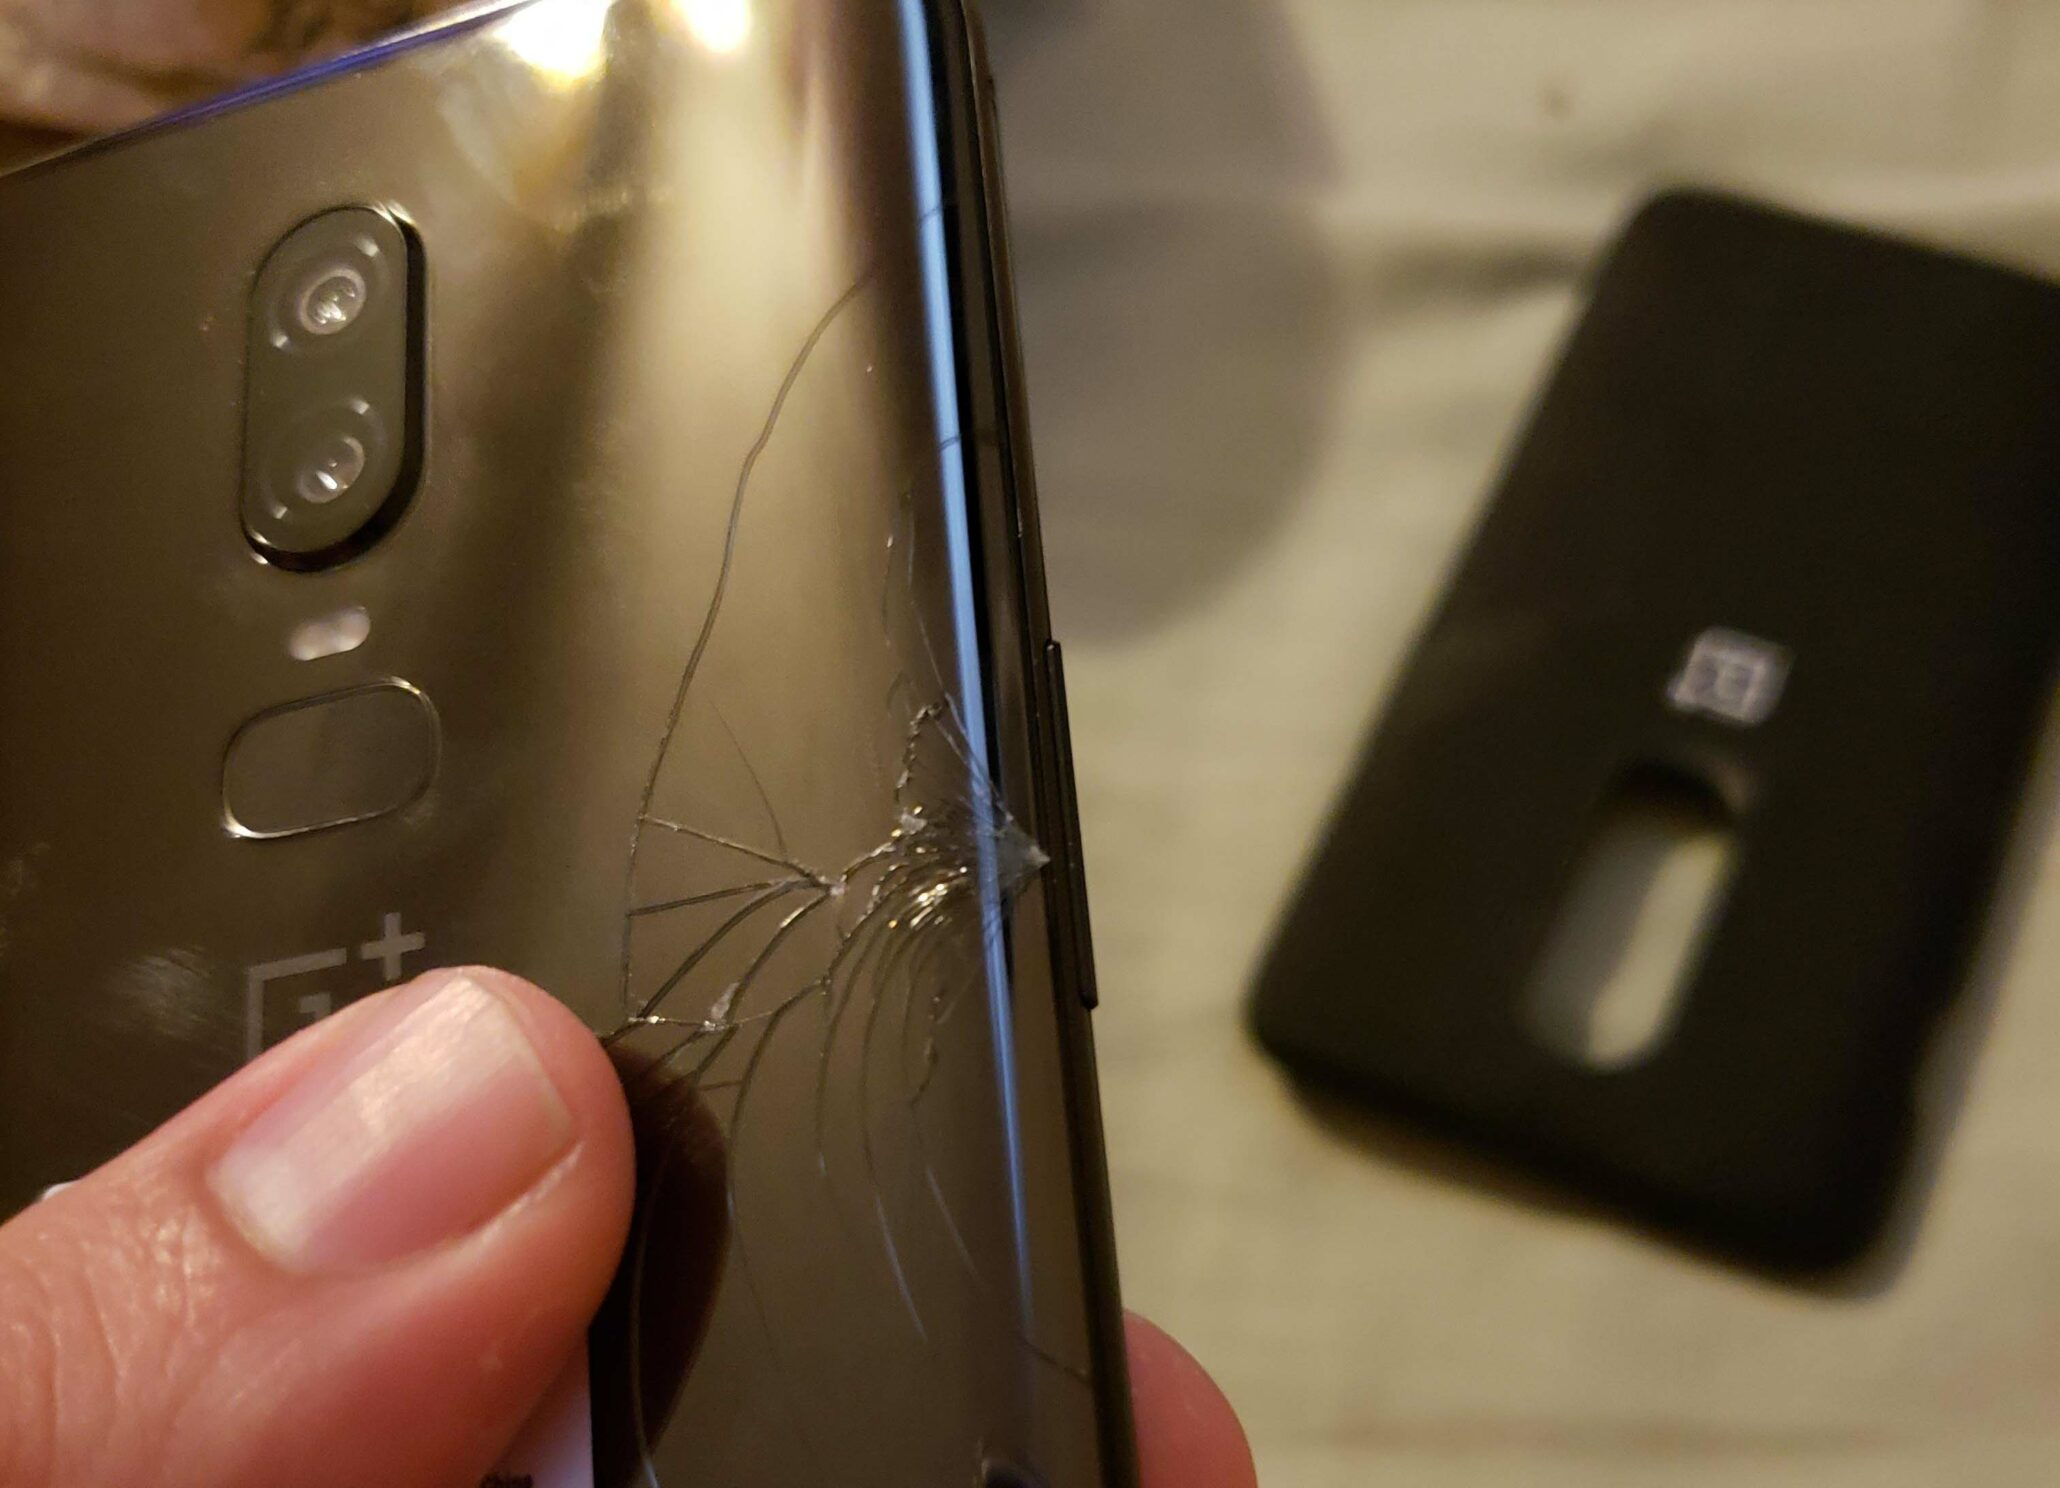 half off 8c487 e05c0 OnePlus 6 Users Are Reporting On the Phone's Rear Glass Panel ...